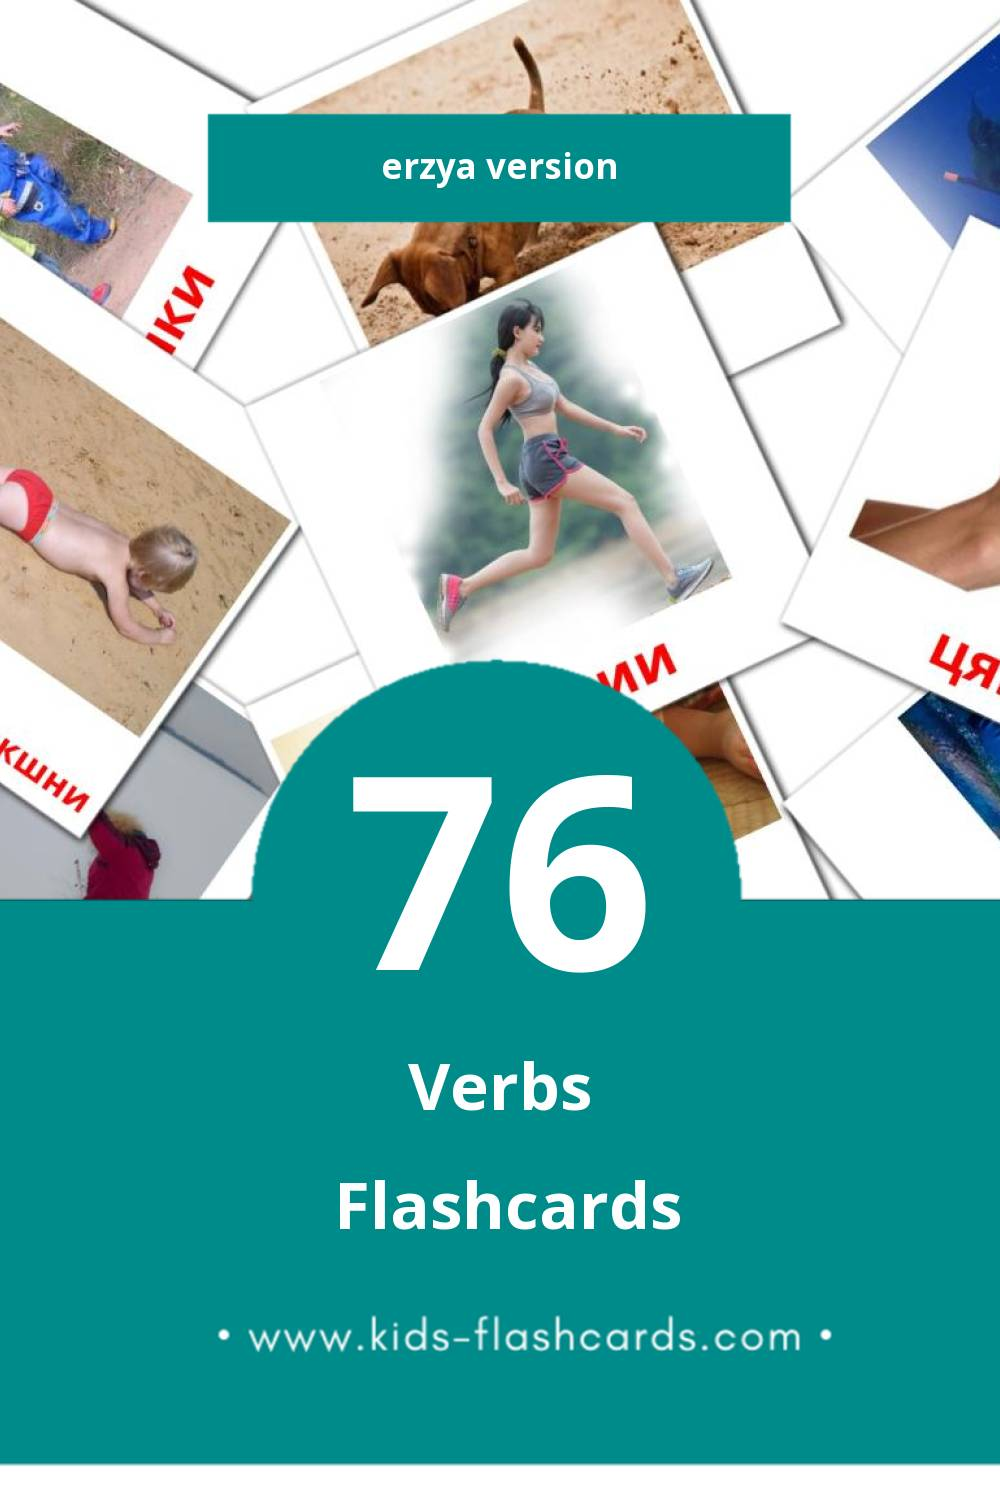 Visual Теемавалт Flashcards for Toddlers (77 cards in Erzya)